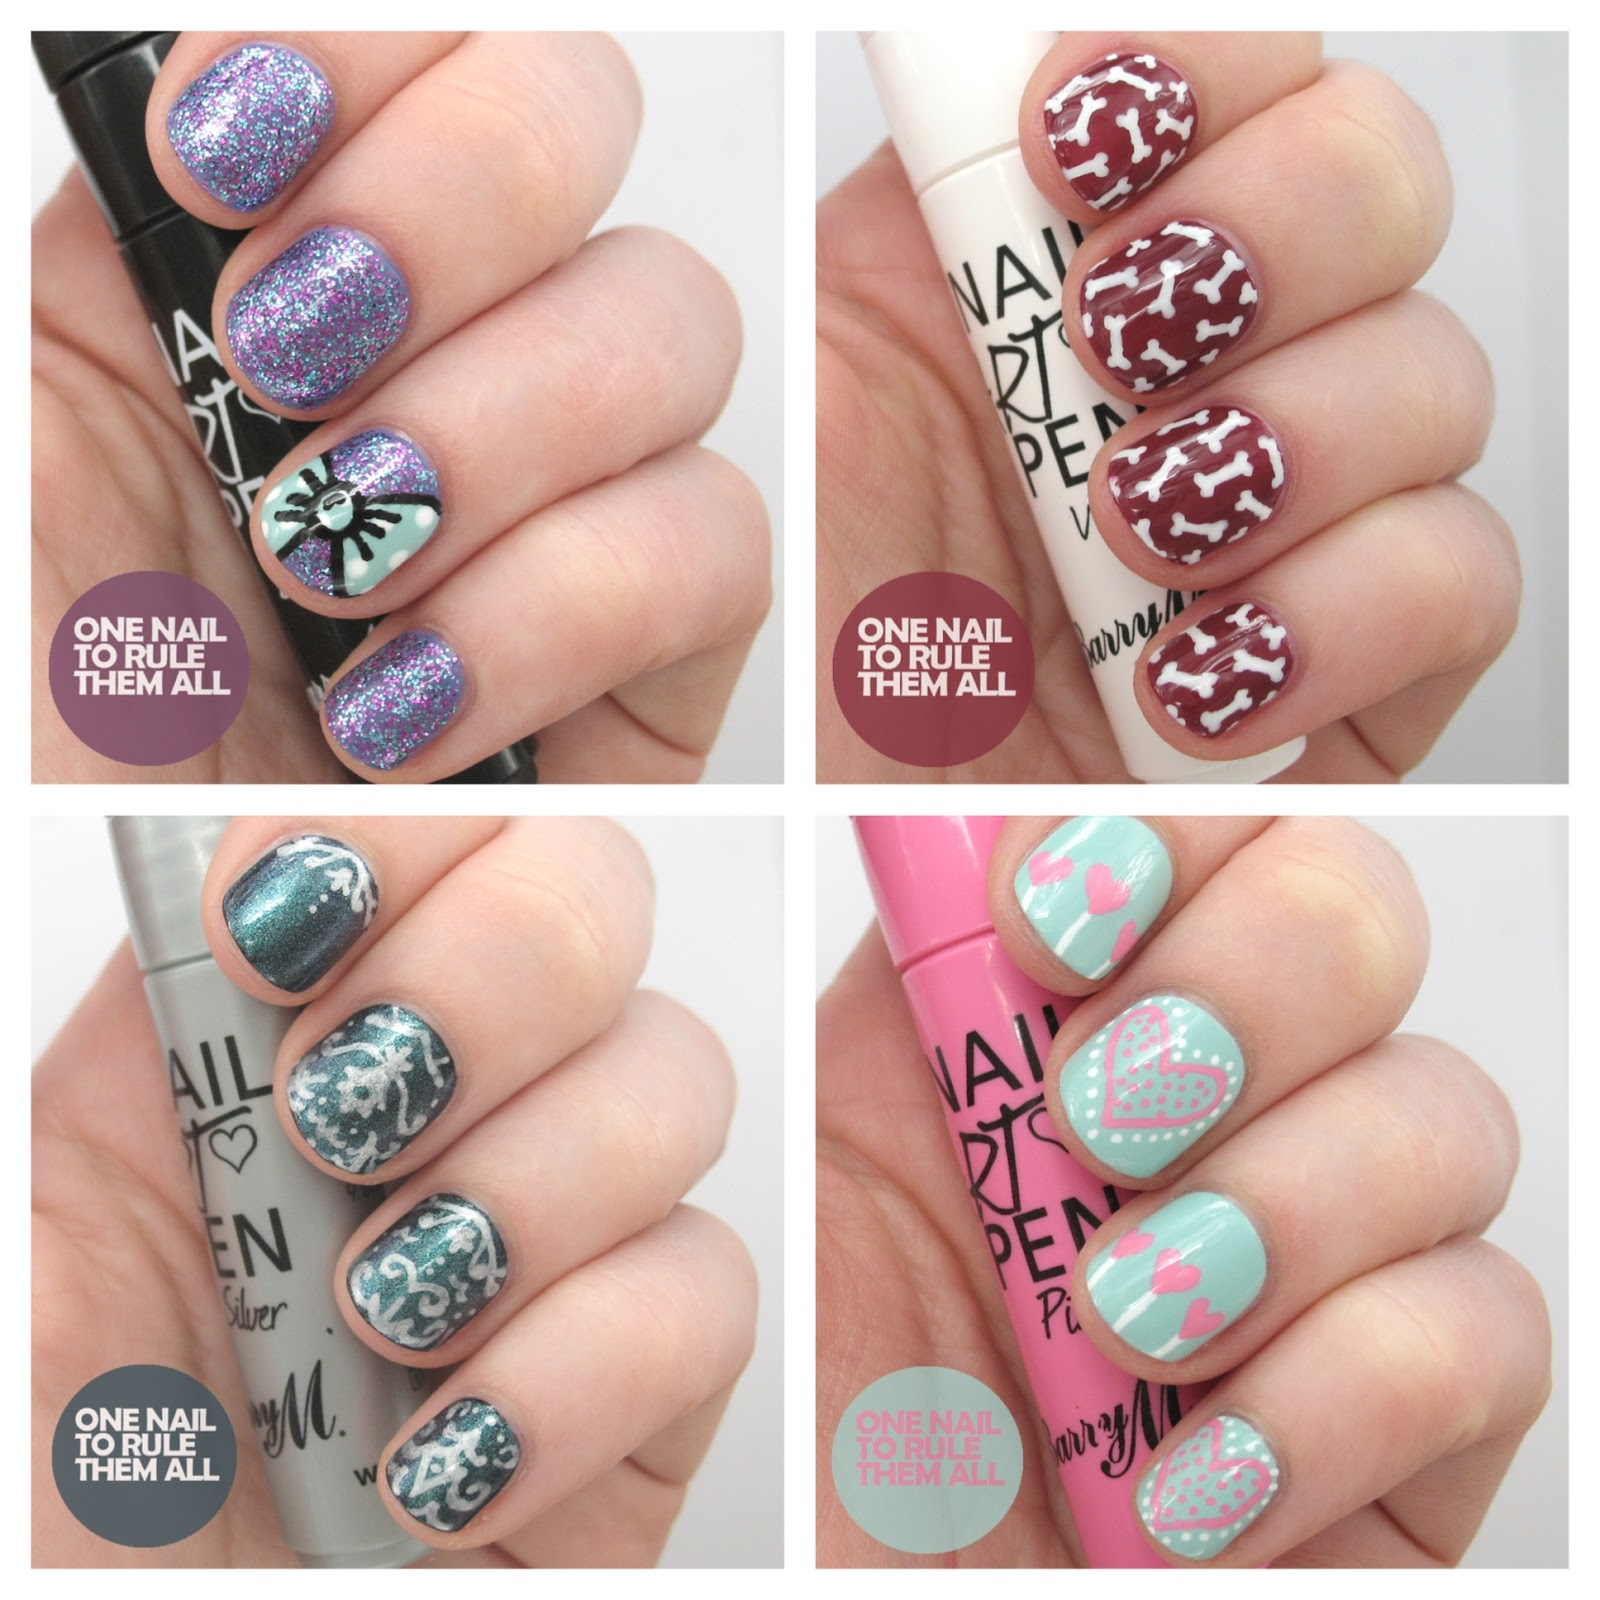 One nail to rule them all barry m nail art pens review prinsesfo Images